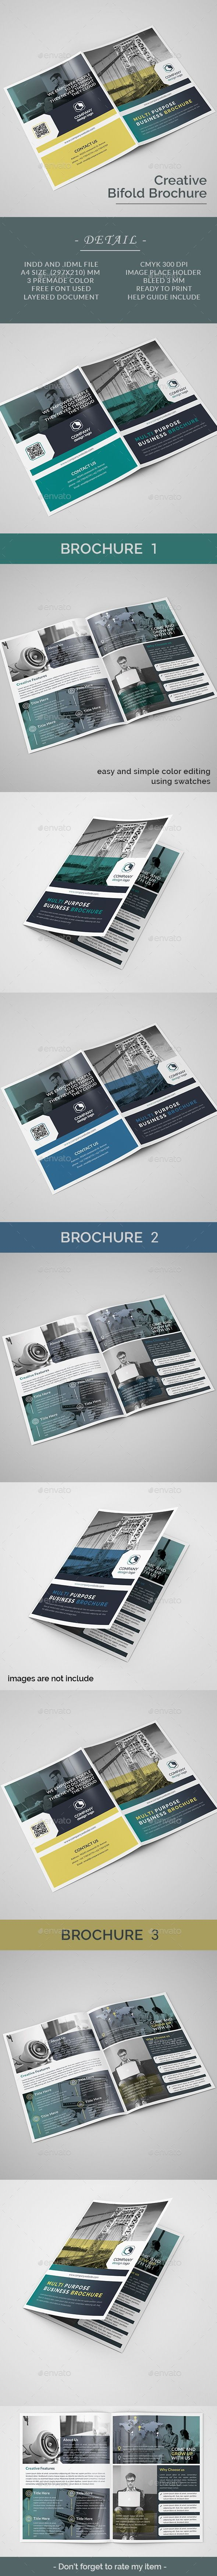 Bifold Brochure Bi-fold Brochure template, Can use for any personal or corporate, Very easily to edit, Very easy to adapt and customize, with help file included. Detail Bi-fold Brochure      4 pages     indesign files (.indd and .idml)     CMYK Color Mode     300 DPI Resolution     Size A4     3 mm Bleed in Each Side     print ready     Paragraph & Character styles